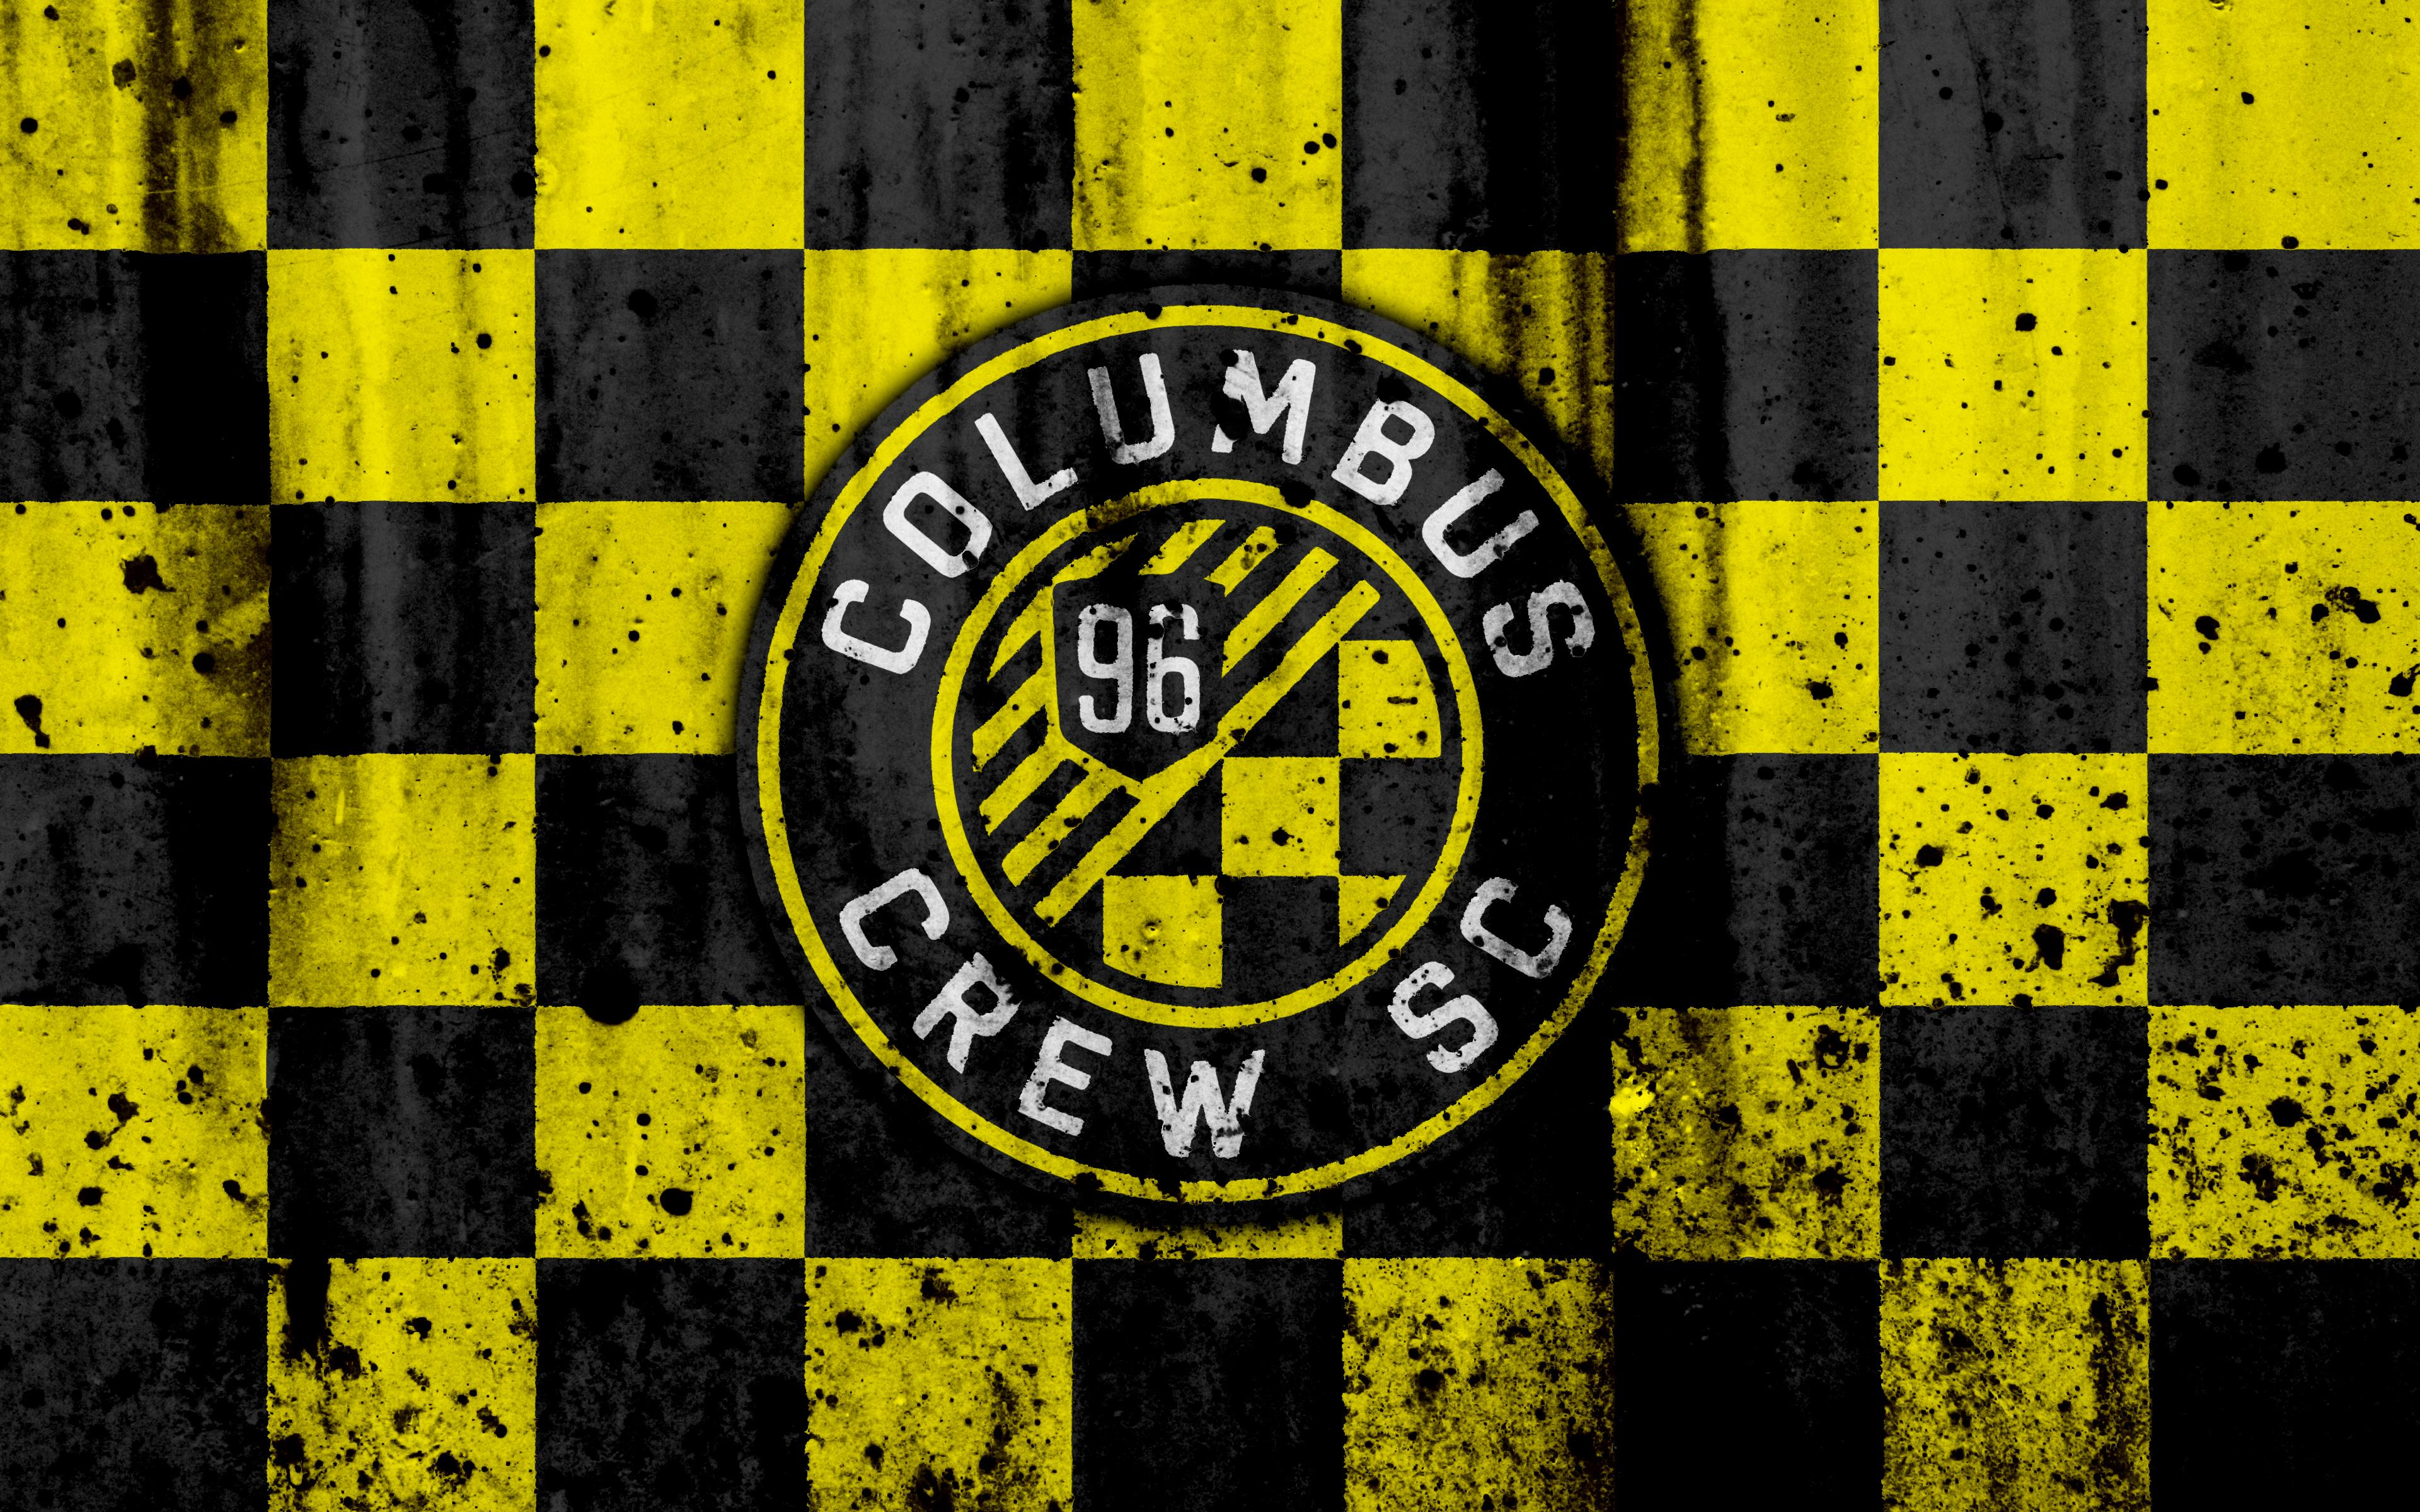 Emblem, Logo, MLS, Soccer, Columbus Crew SC wallpapers and backgrounds